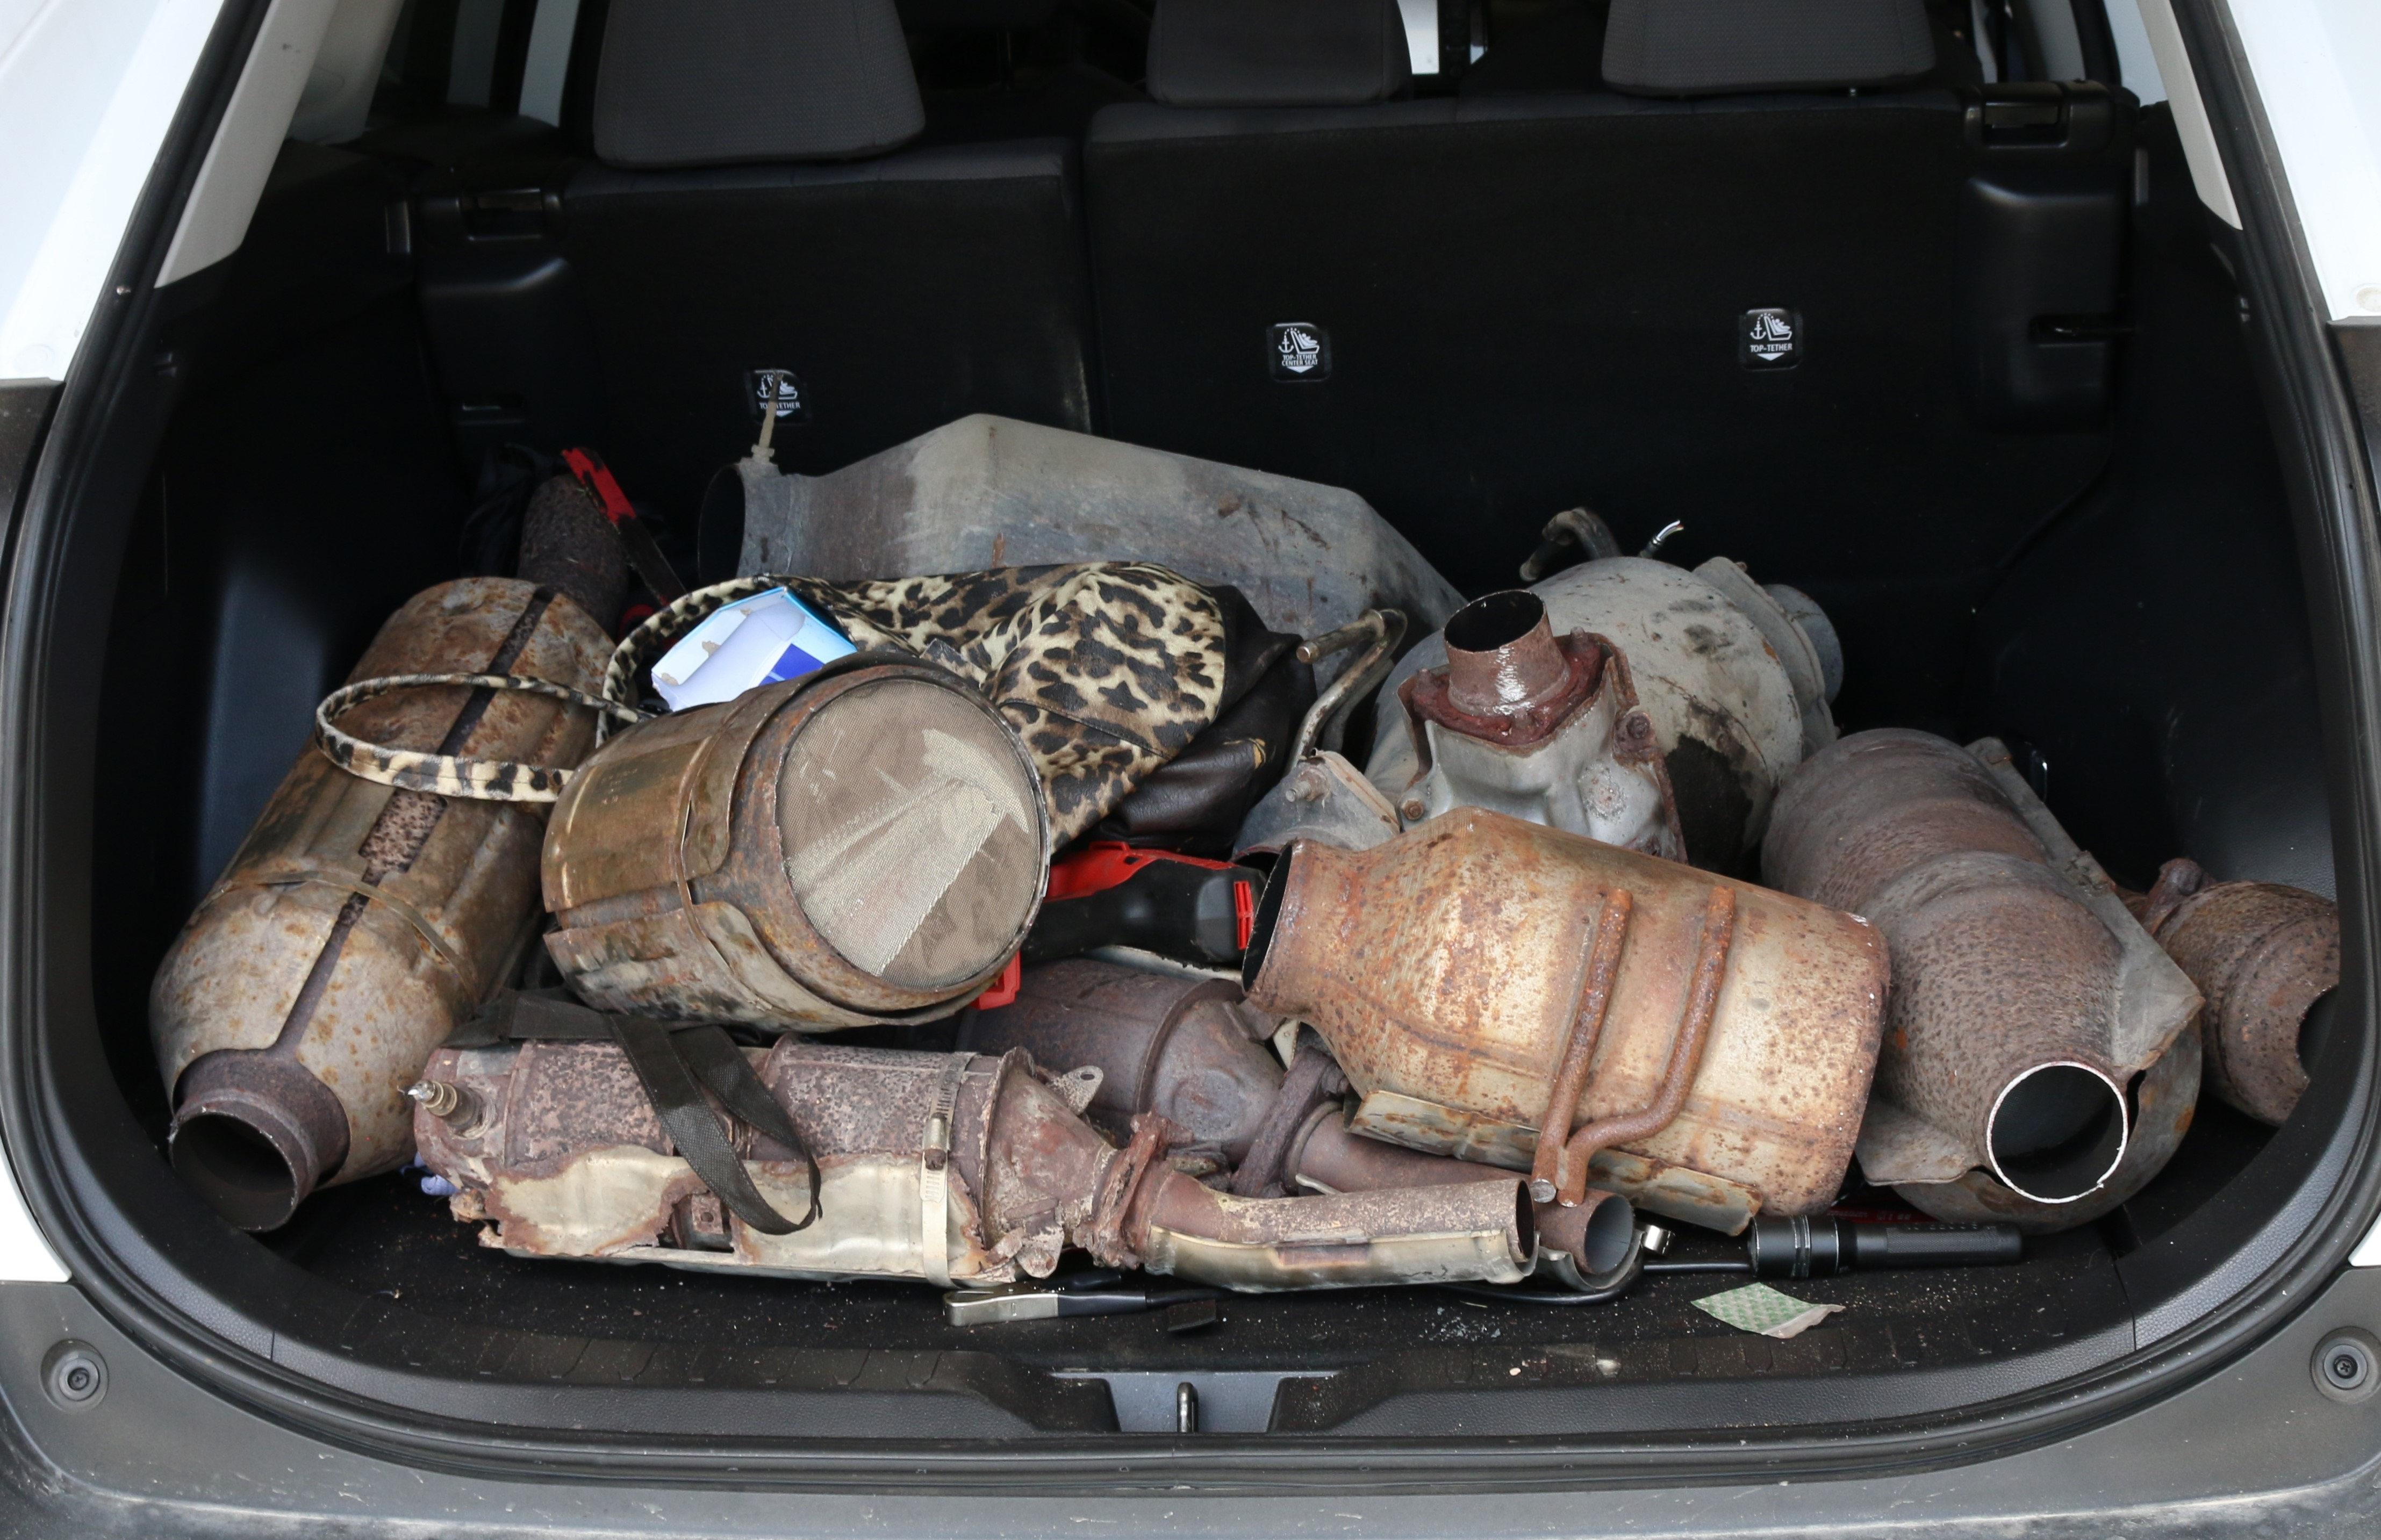 Four charged in relation to catalytic converter thefts